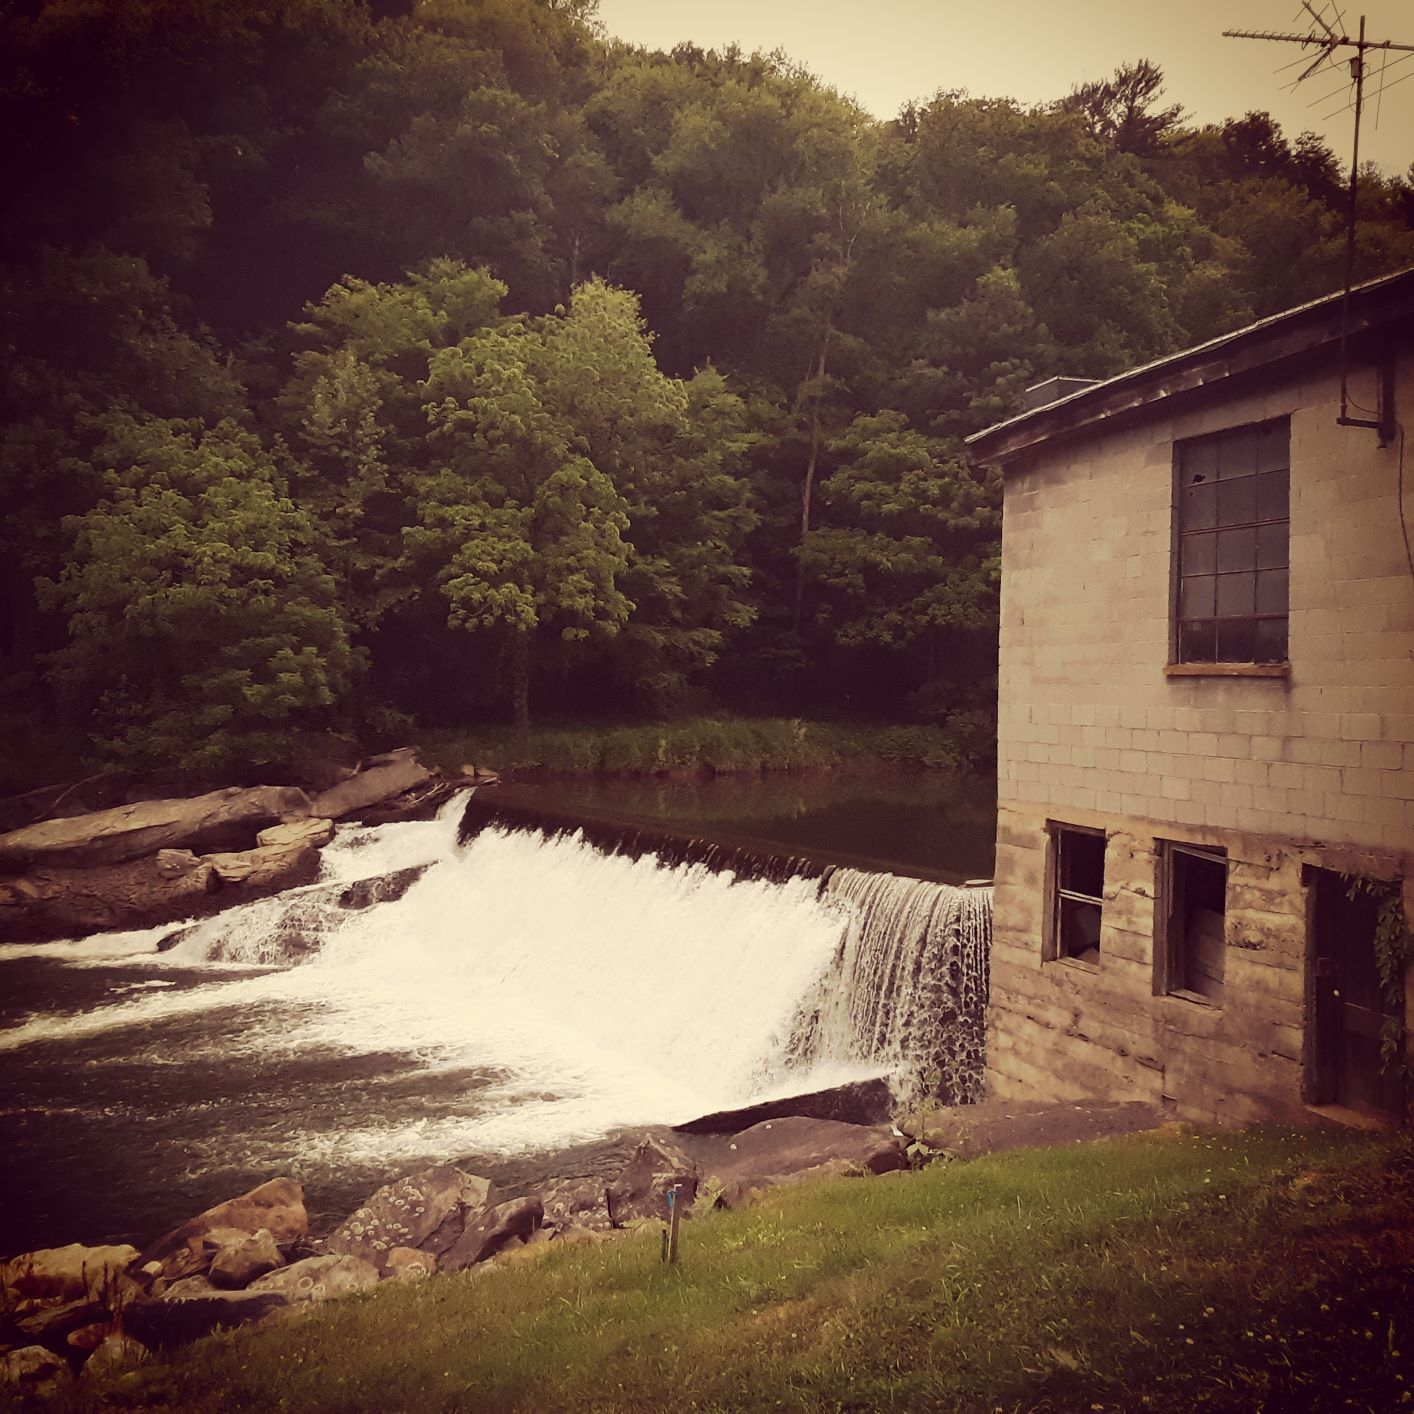 Ward's Mill Dam on Watauga River Planned for Removal This Year